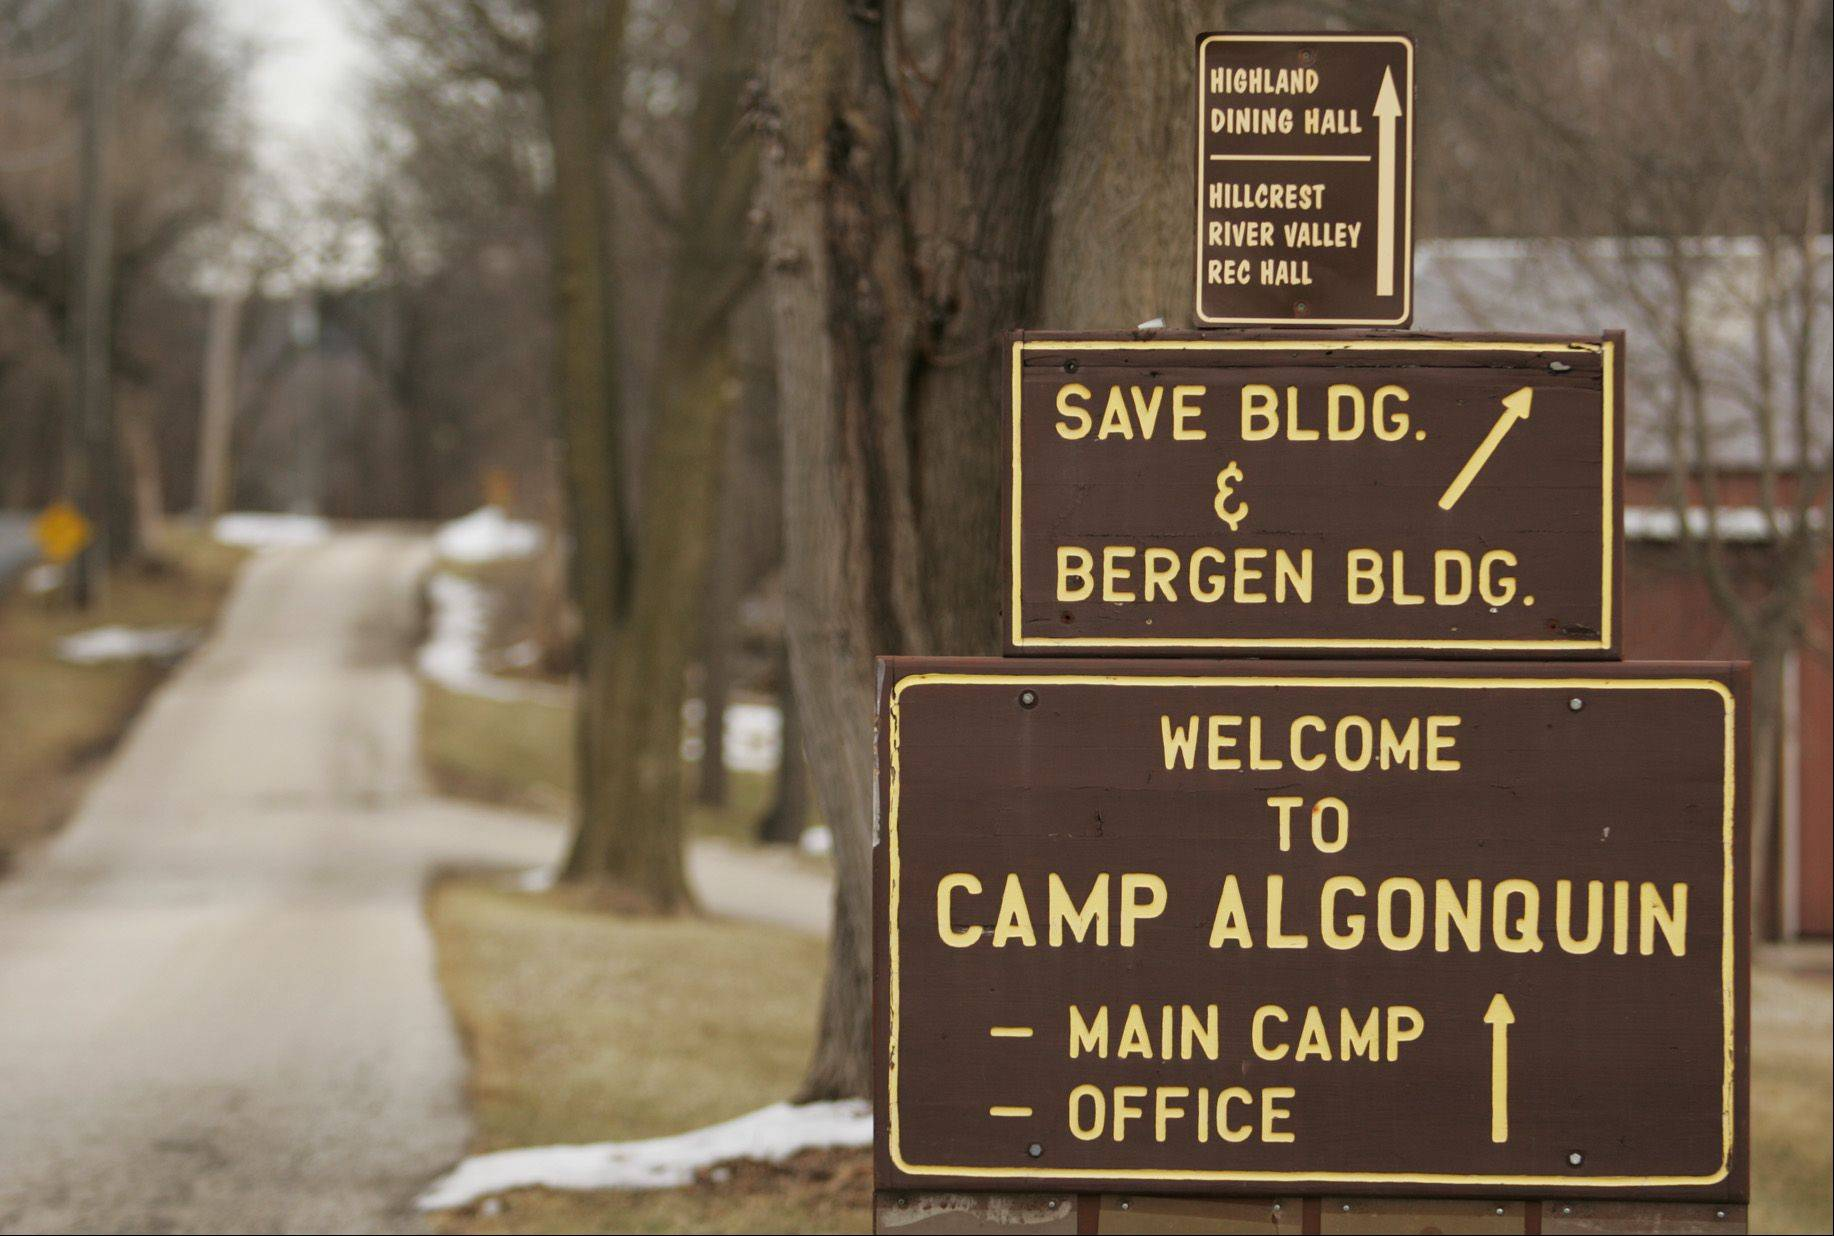 Conservation area master plan will look at Camp Algonquin